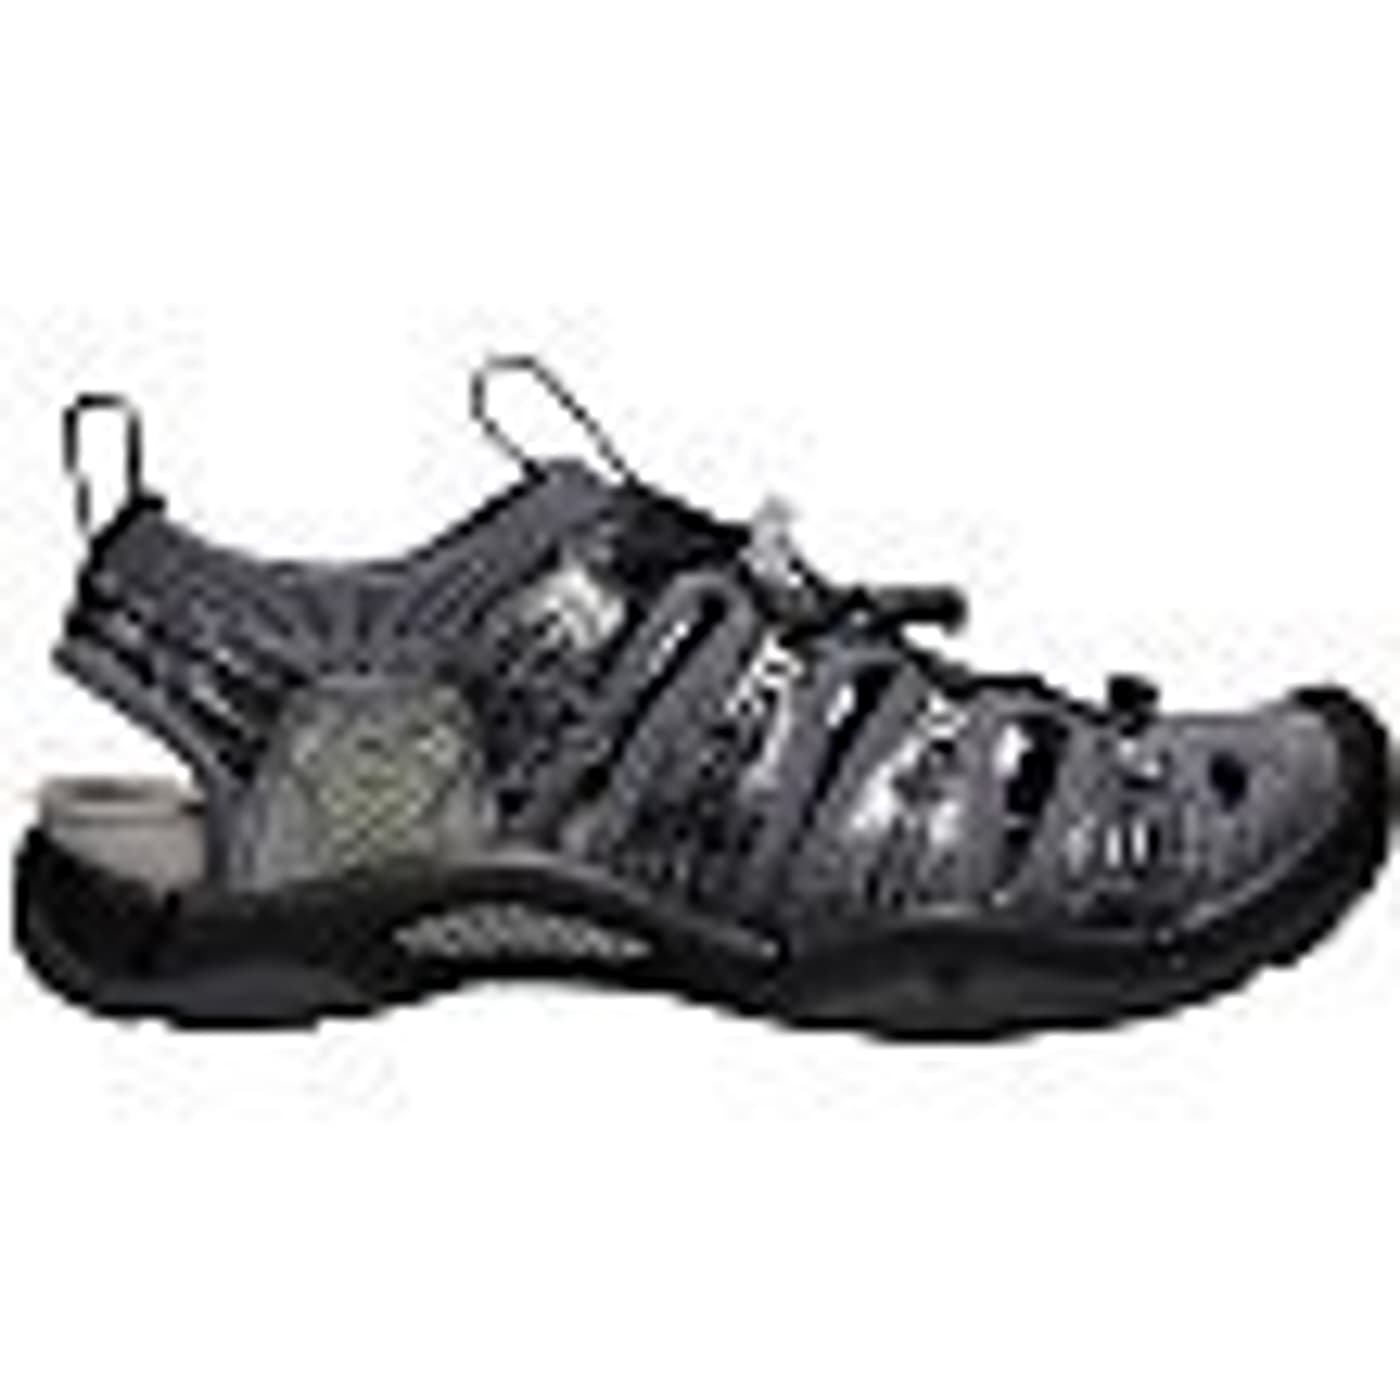 Keen Evofit One Sandalo pc2nLw